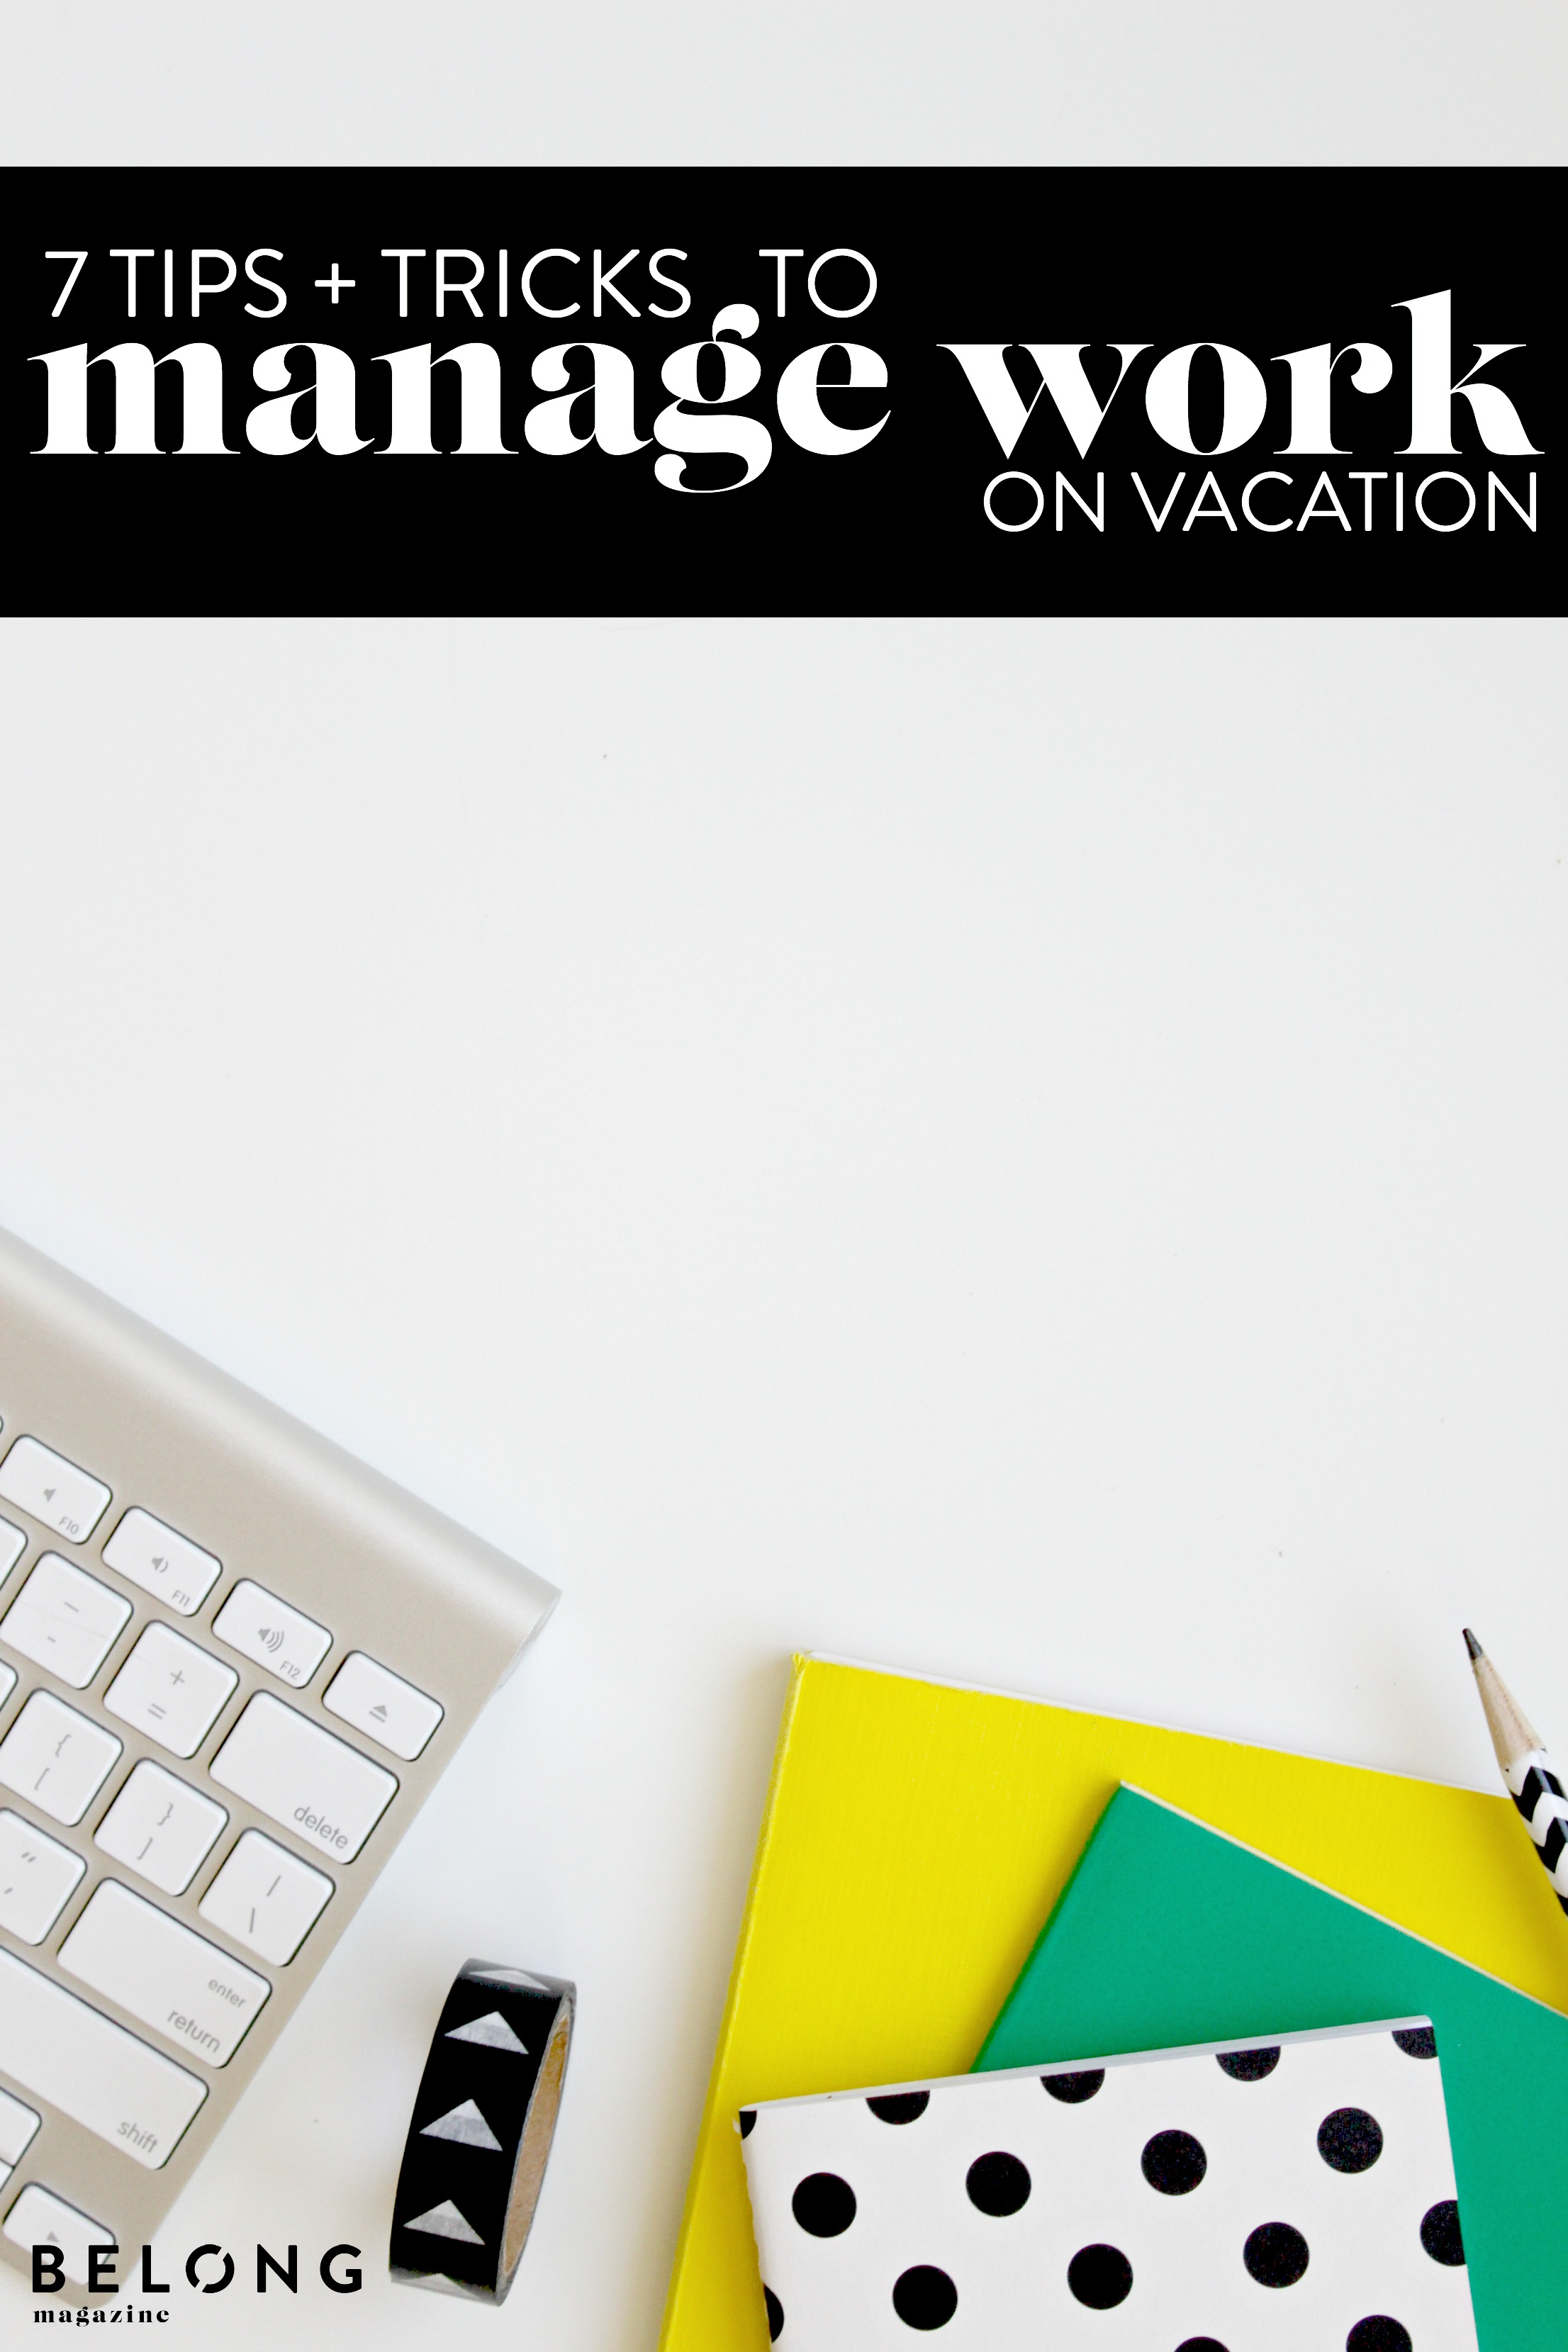 7 tips and tricks to manage work on vacation - belong magazine blog